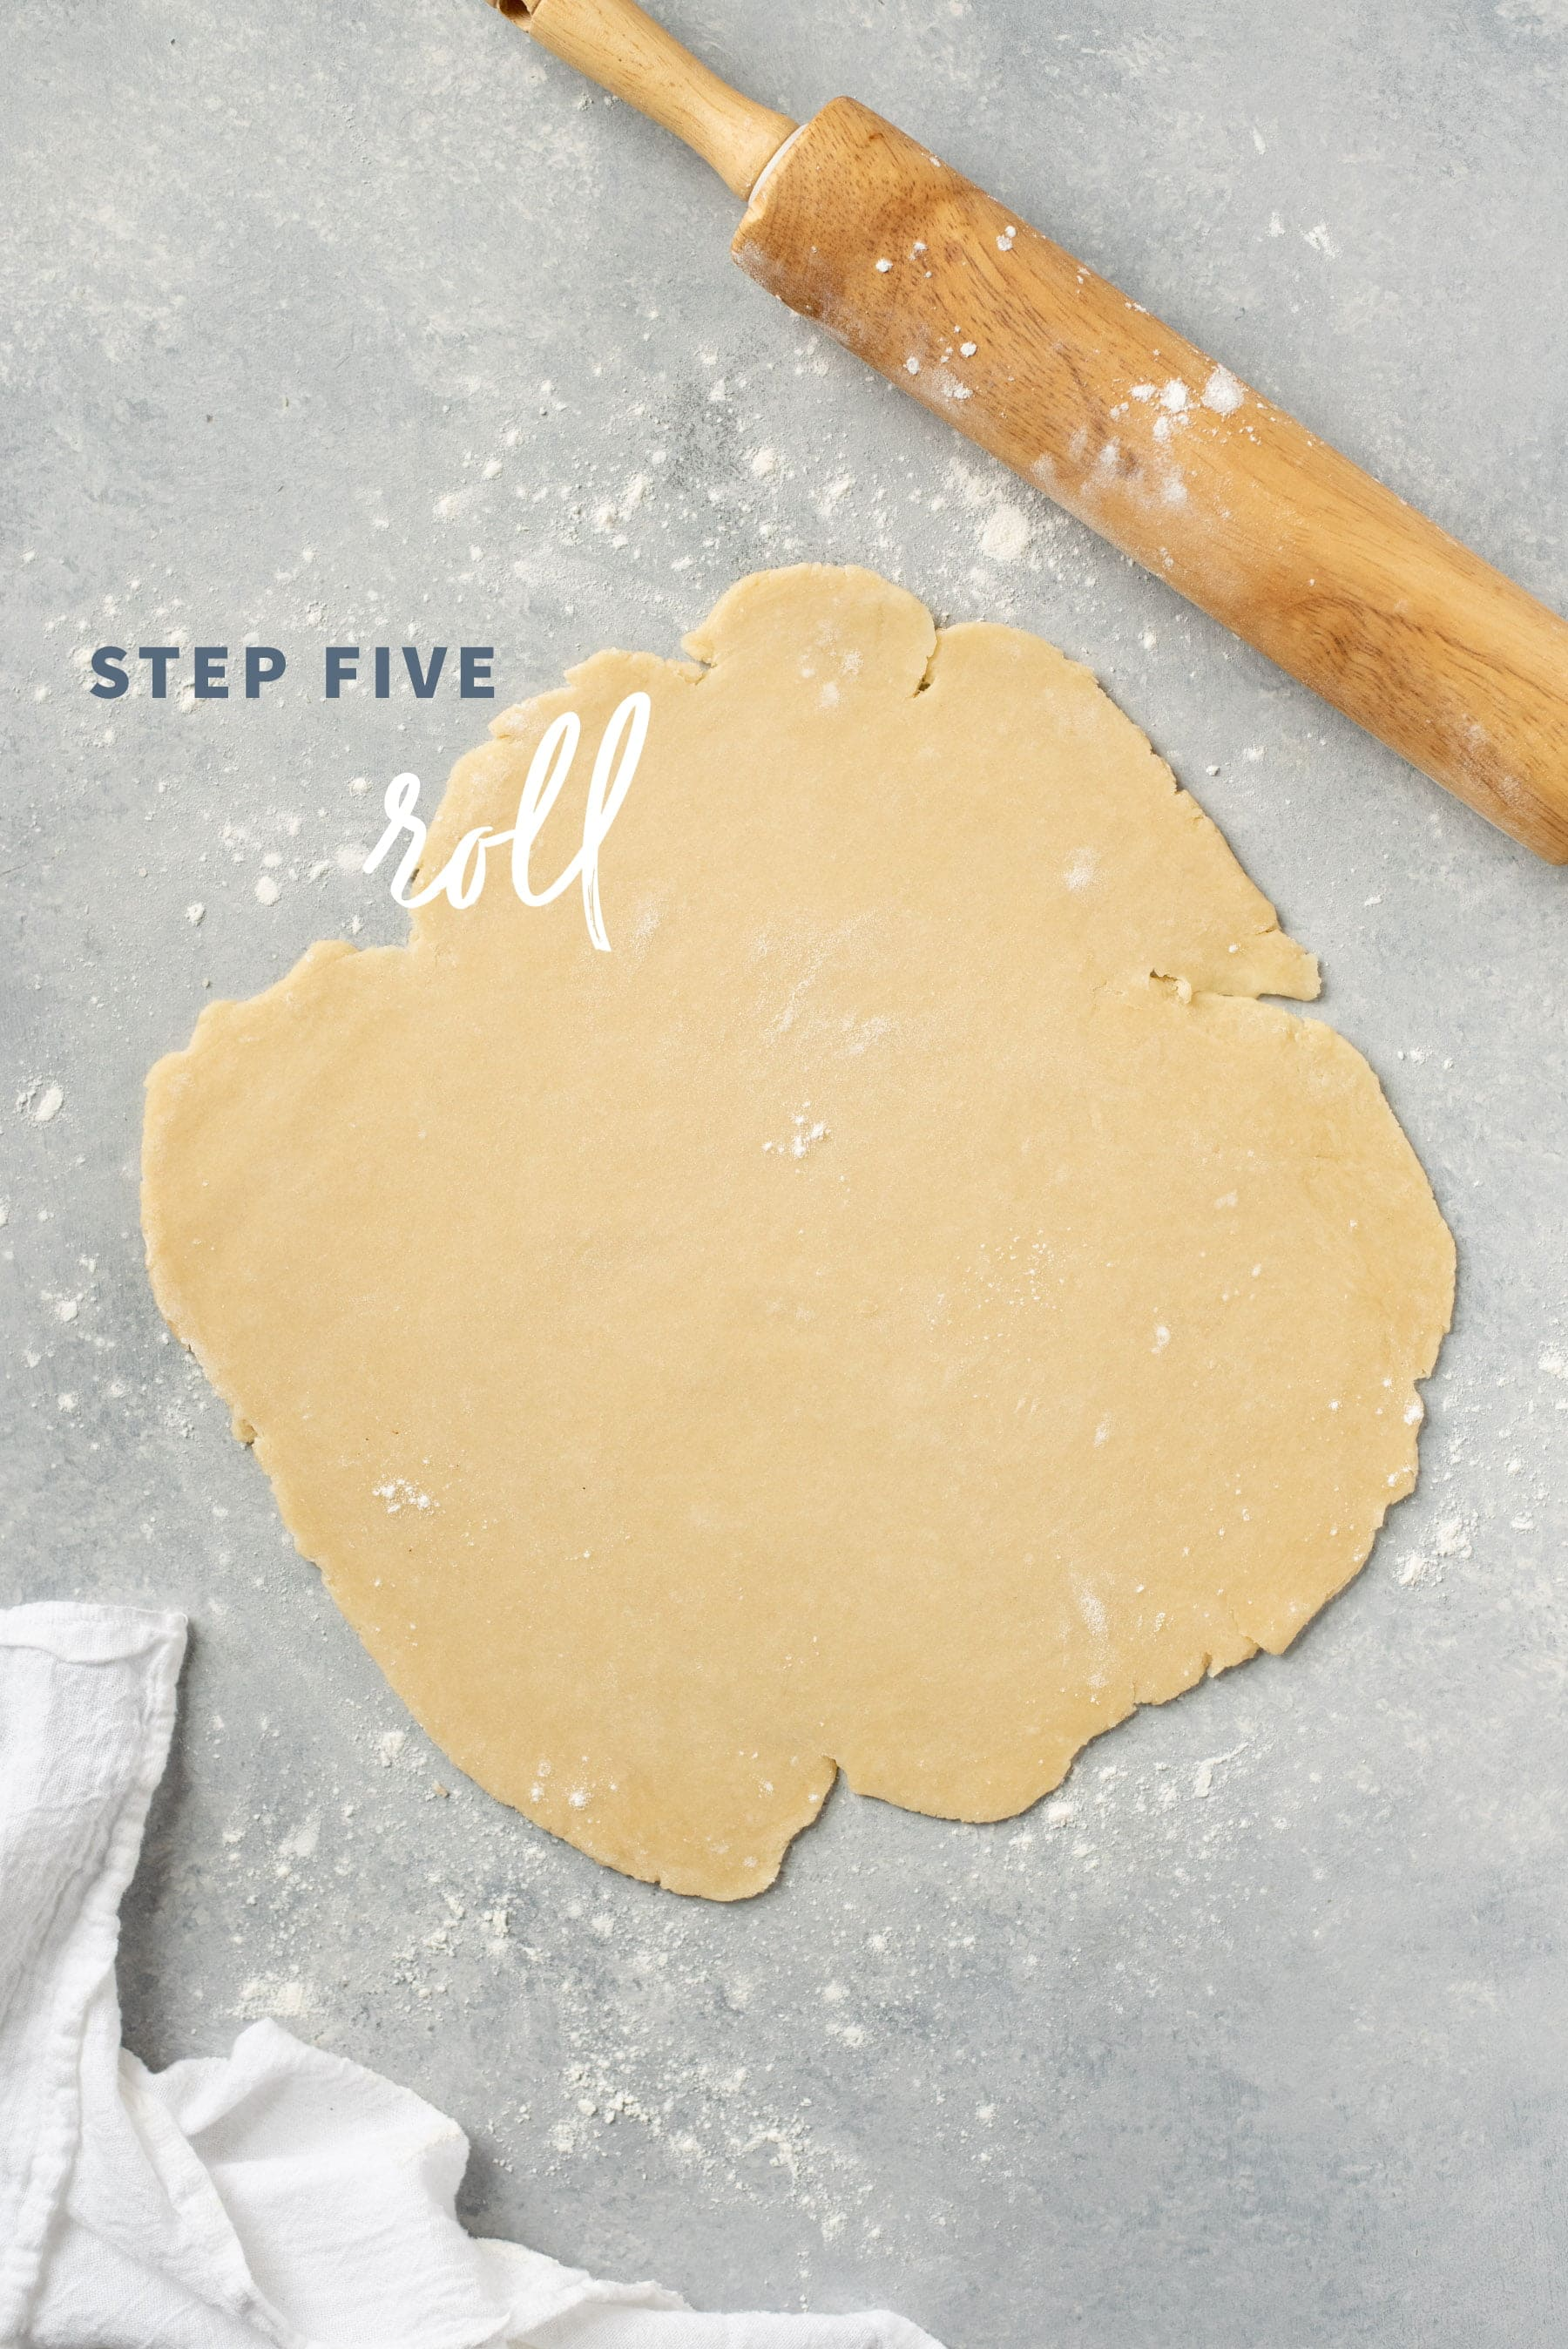 Rolled out circle of perfect pie crust dough